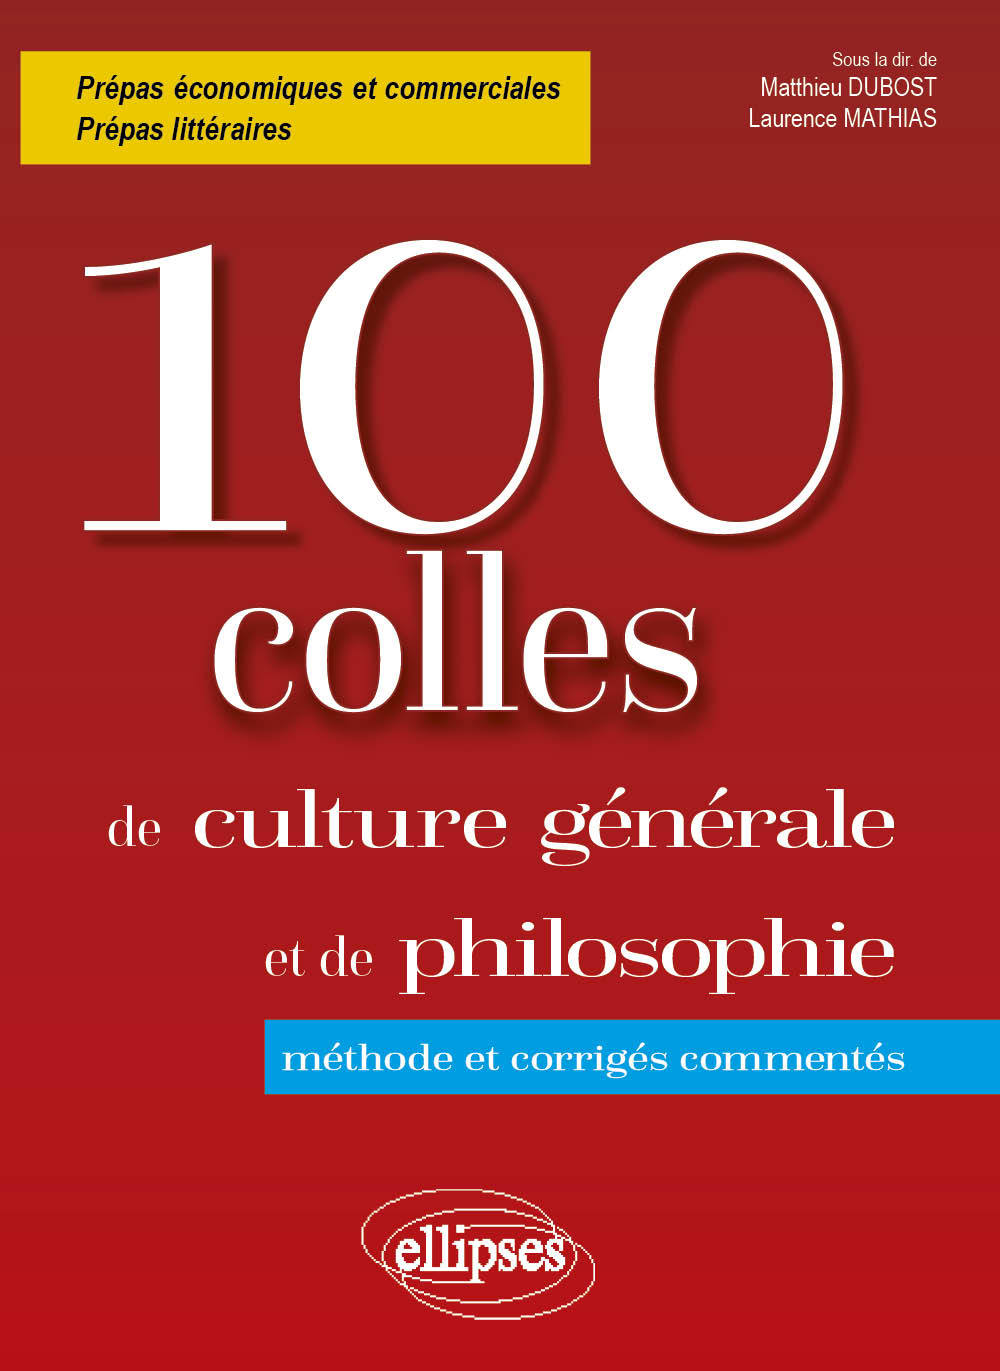 100 COLLES DE CULTURE GENERALE ET DE PHILOSOPHIE. METHODE ET CORRIGES COMMENTES. PREPAS COMMERCIALES